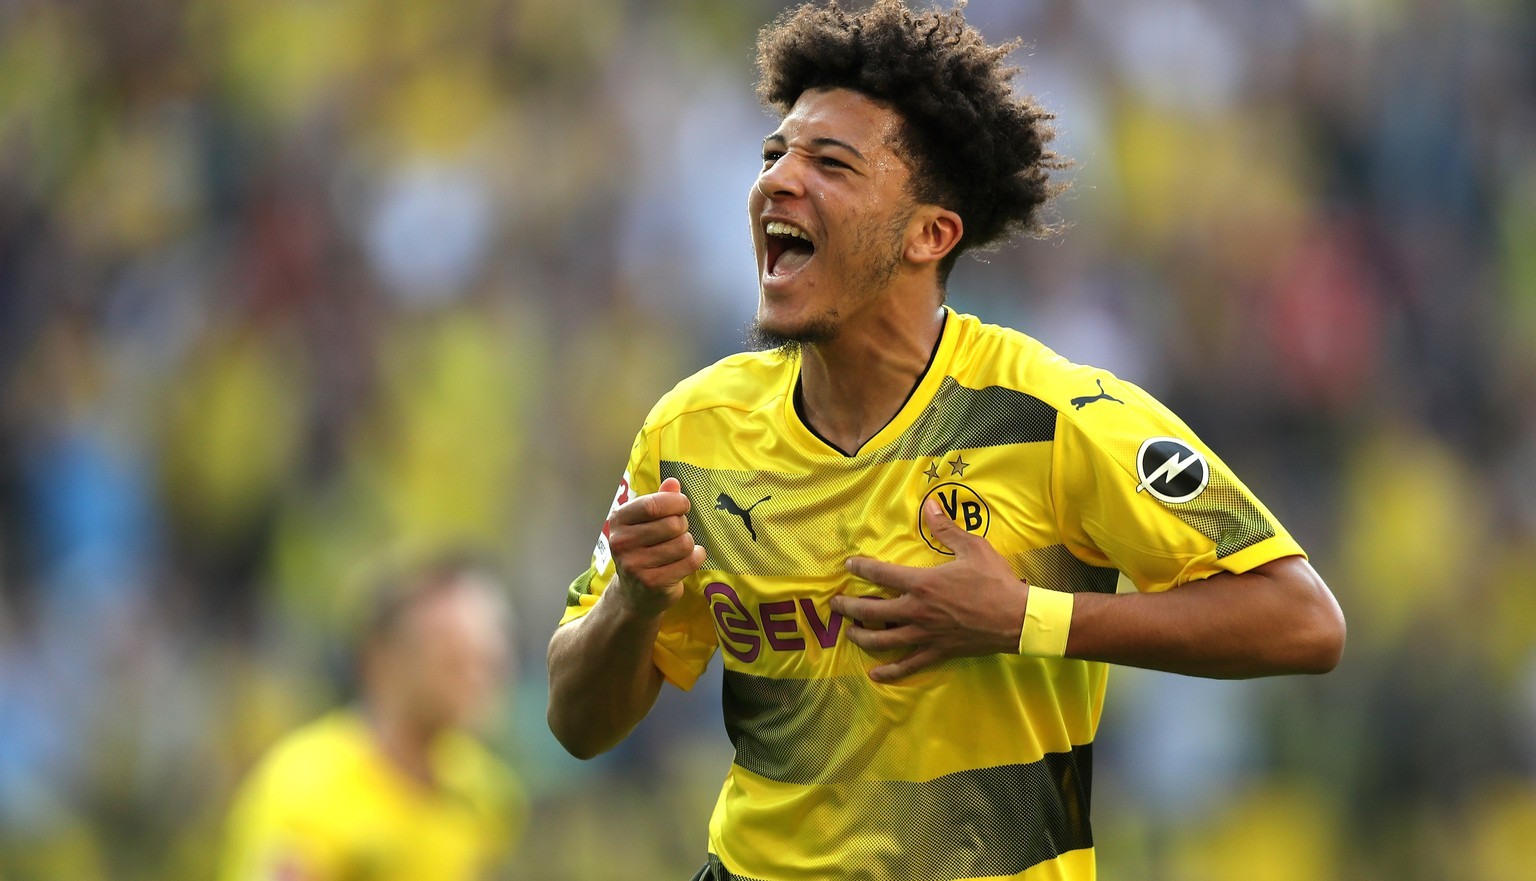 epa06683959 Dortmund's Jadon Sancho (C) celebrates scoring the opening goal during the German Bundesliga soccer match between Borussia Dortmund and Bayer Leverkusen in Dortmund, Germany, 21 April 2018..  EPA/FRIEDEMANN VOGEL EMBARGO CONDITIONS - ATTENTION: Due to the accreditation guidelines, the DFL only permits the publication and utilisation of up to 15 pictures per match on the internet and in online media during the match.